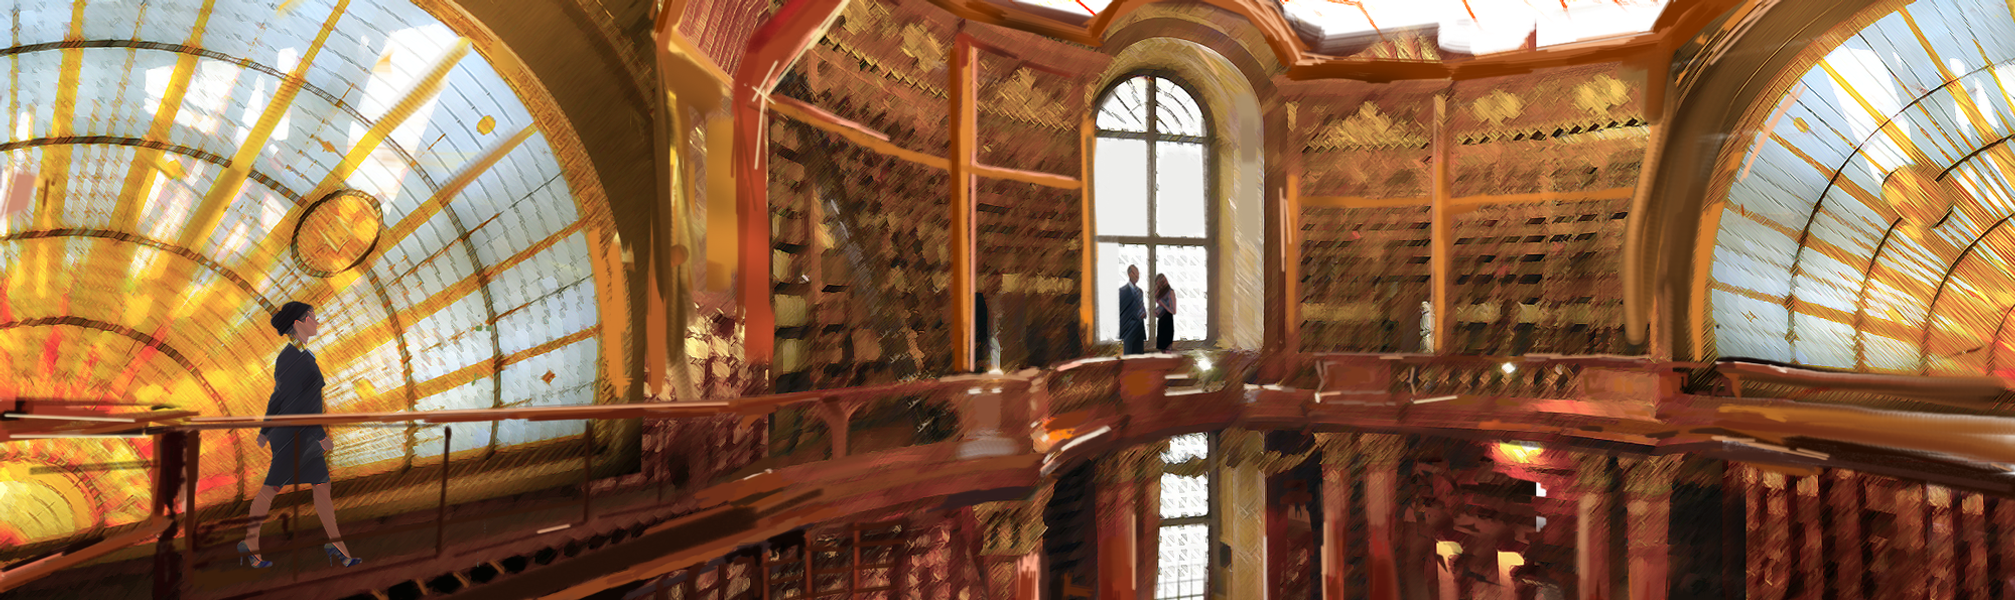 dreamland library.png